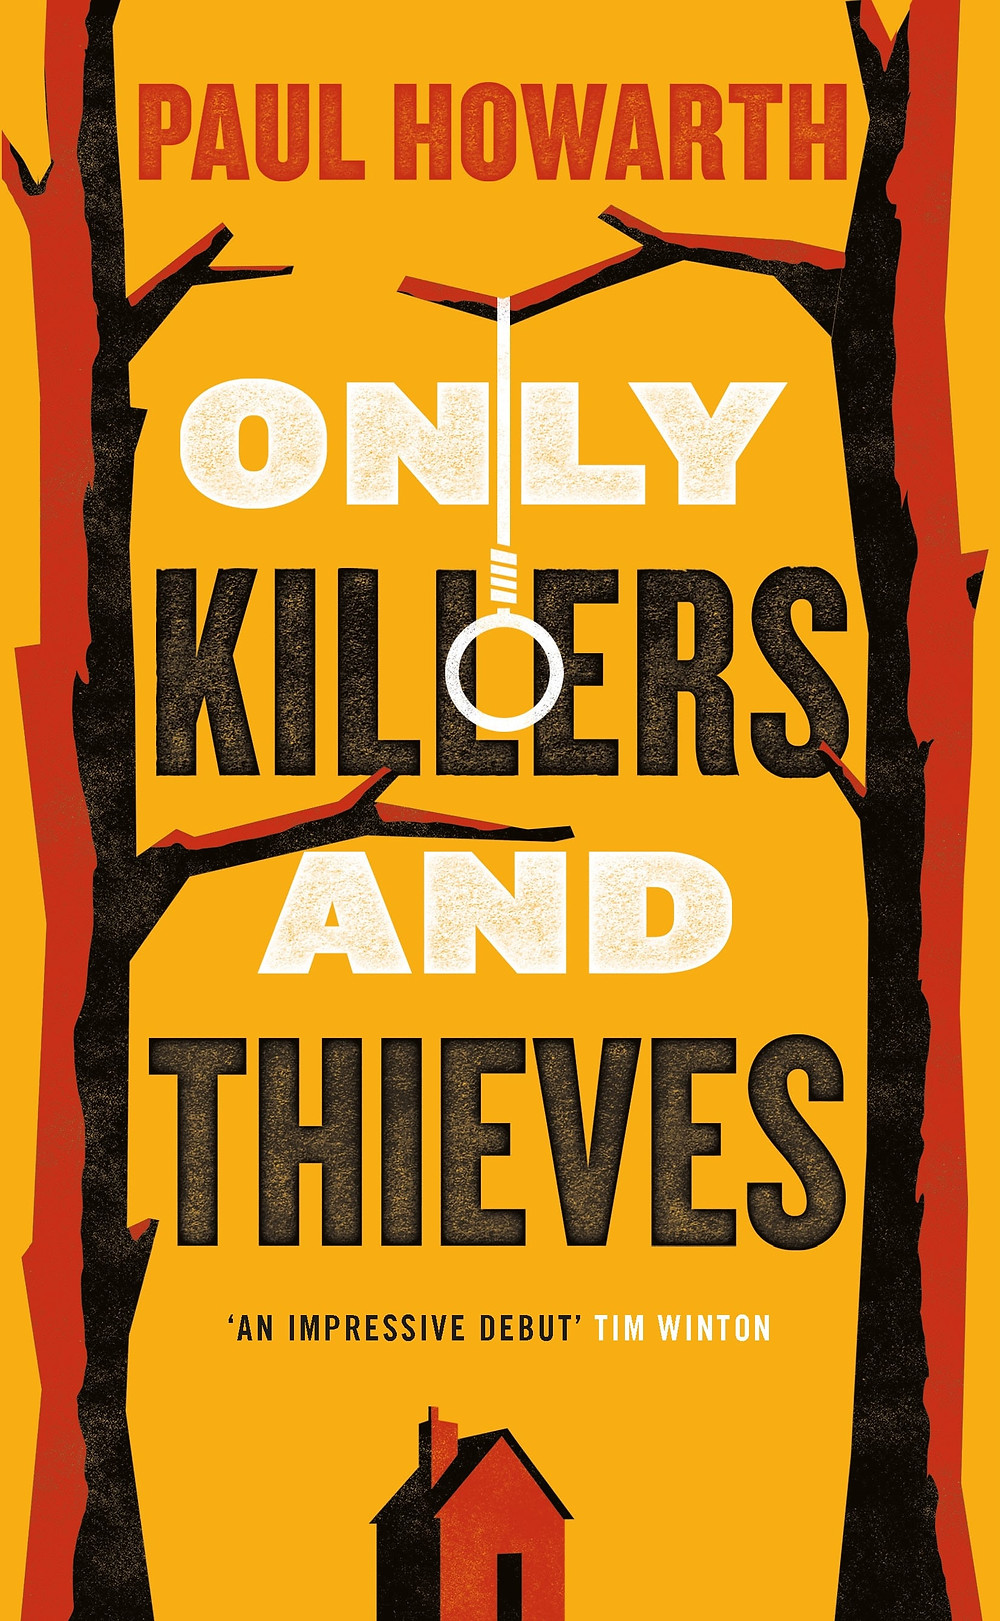 Only Killers and Thieves, The Riff Raff